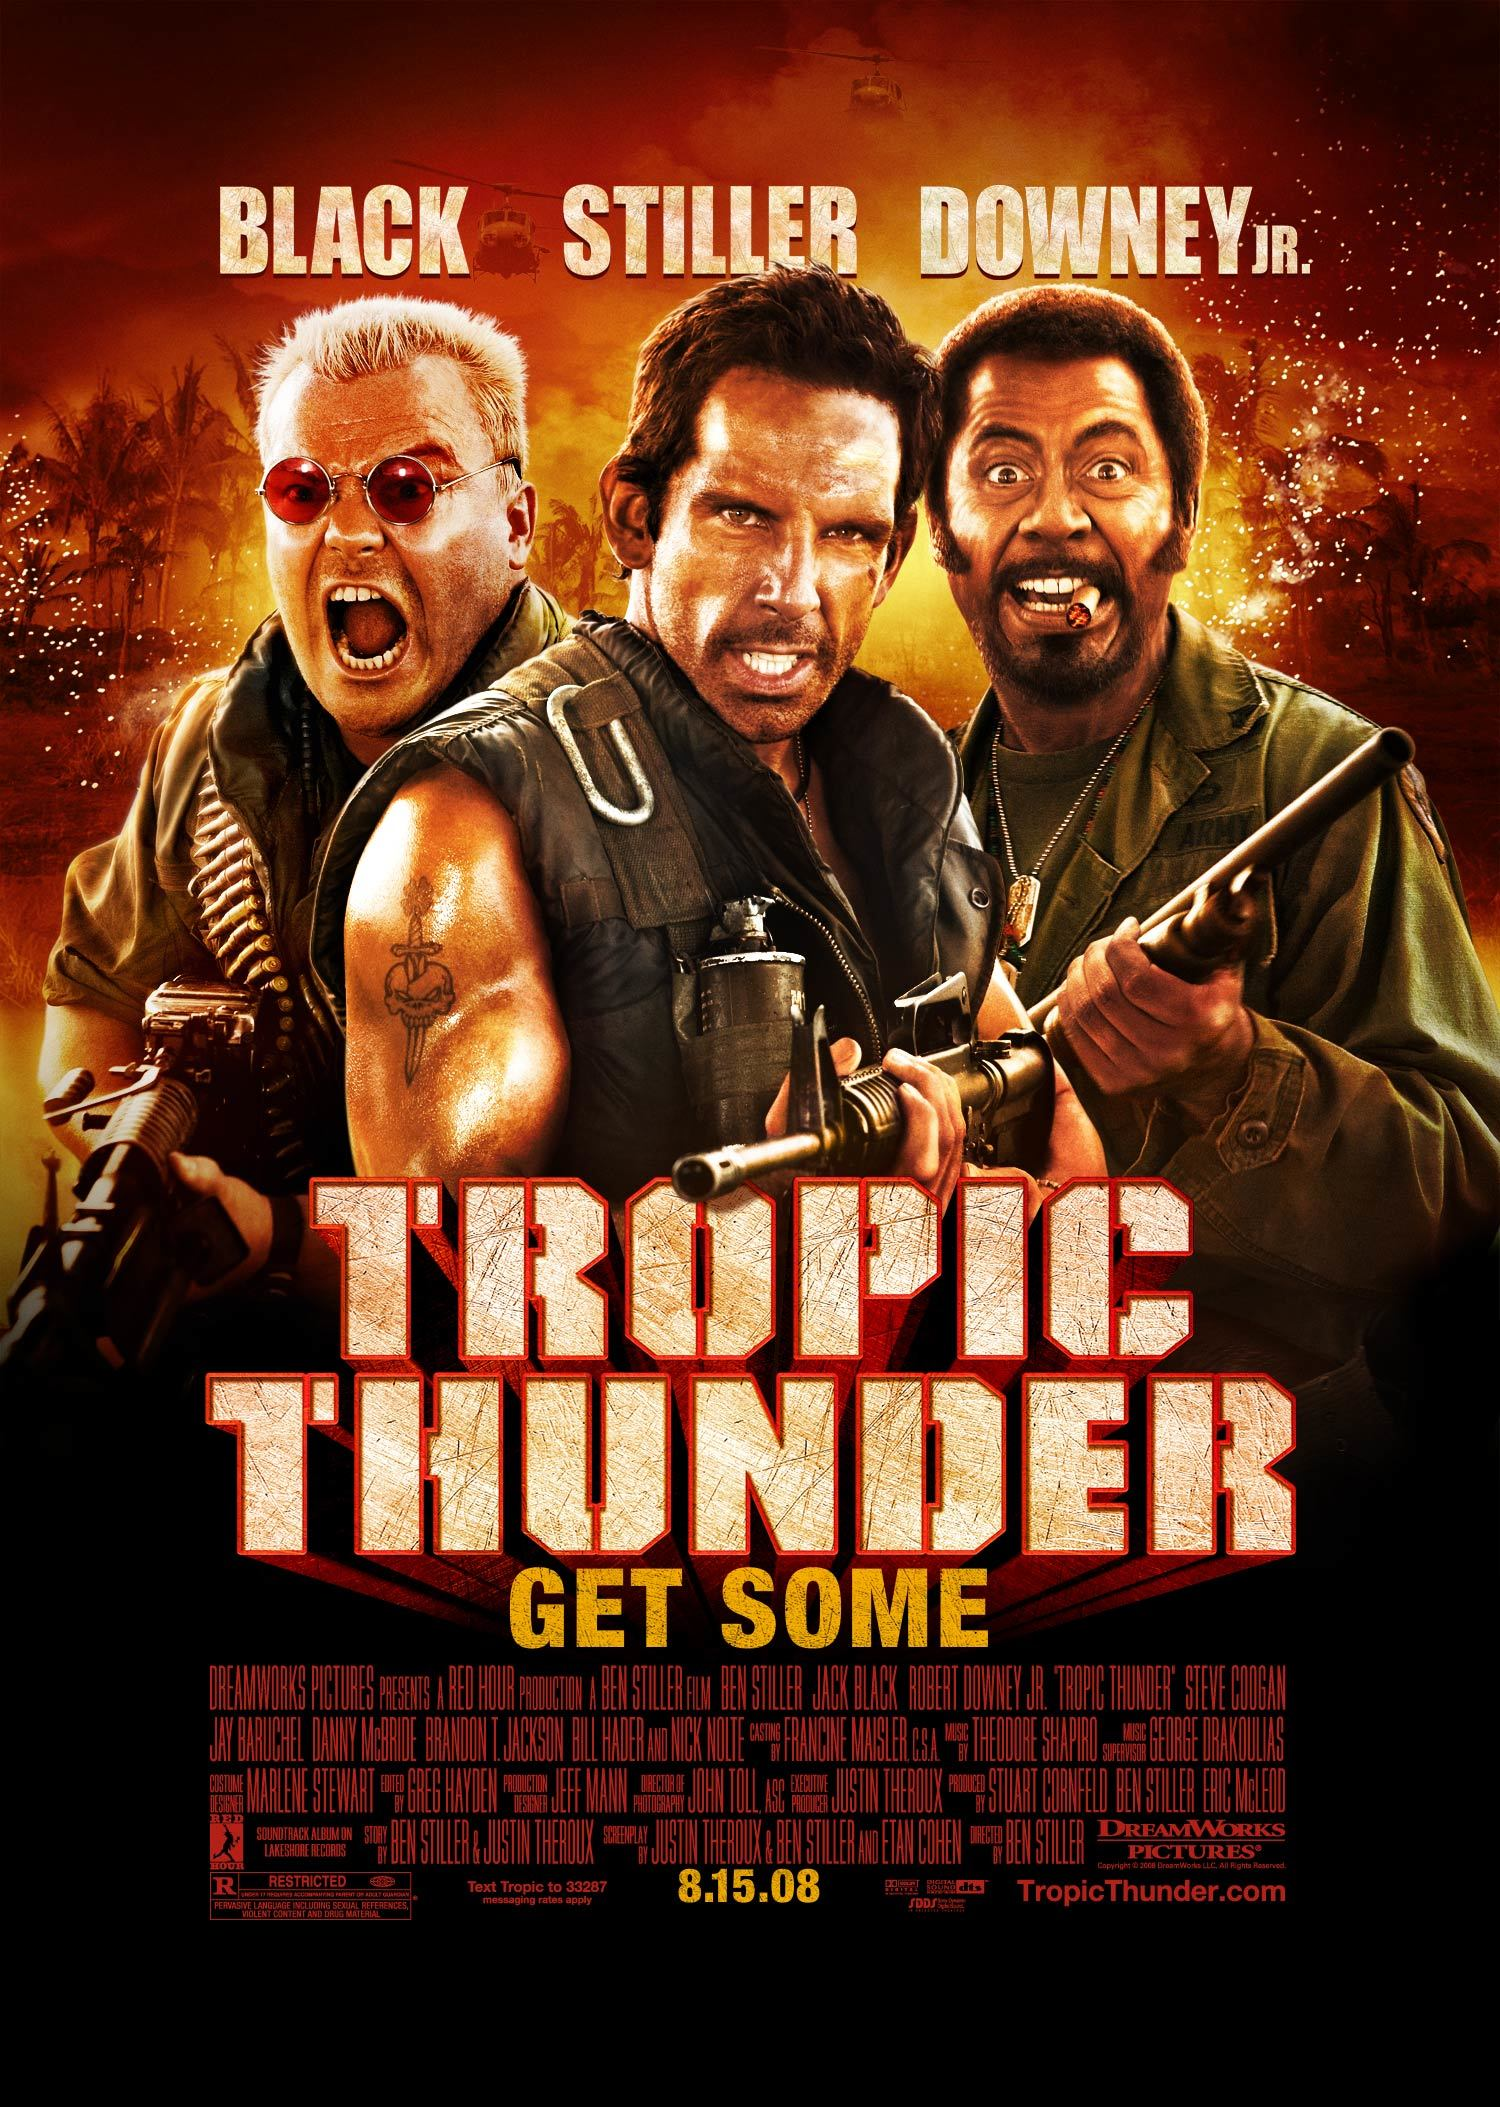 tropic thunder Movie posters HD Wallpaper